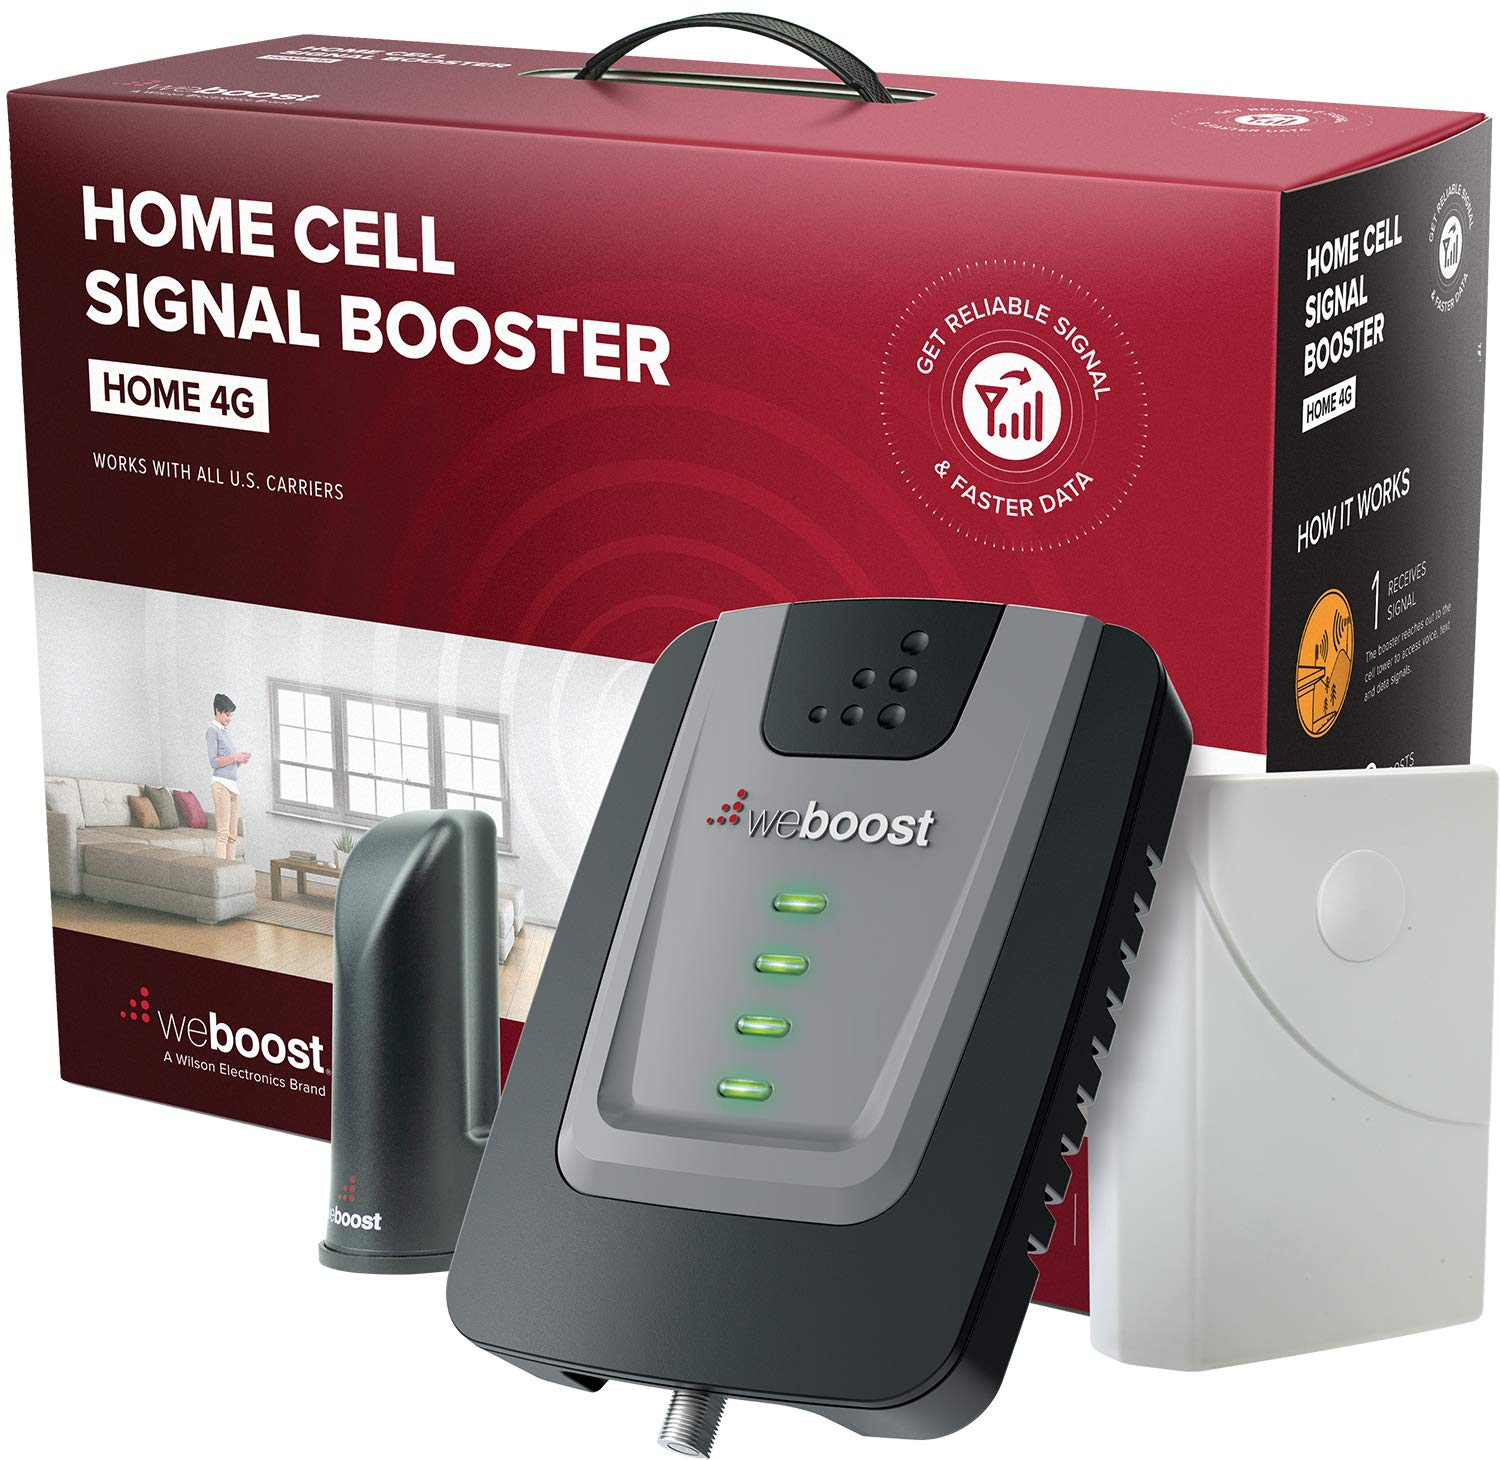 weBoost Home 4G (470101) Cell Phone Signal Booster for Home and Office - Verizon, AT&T, T-Mobile, Sprint - Supports 1,500 Square Foot Area by weBoost